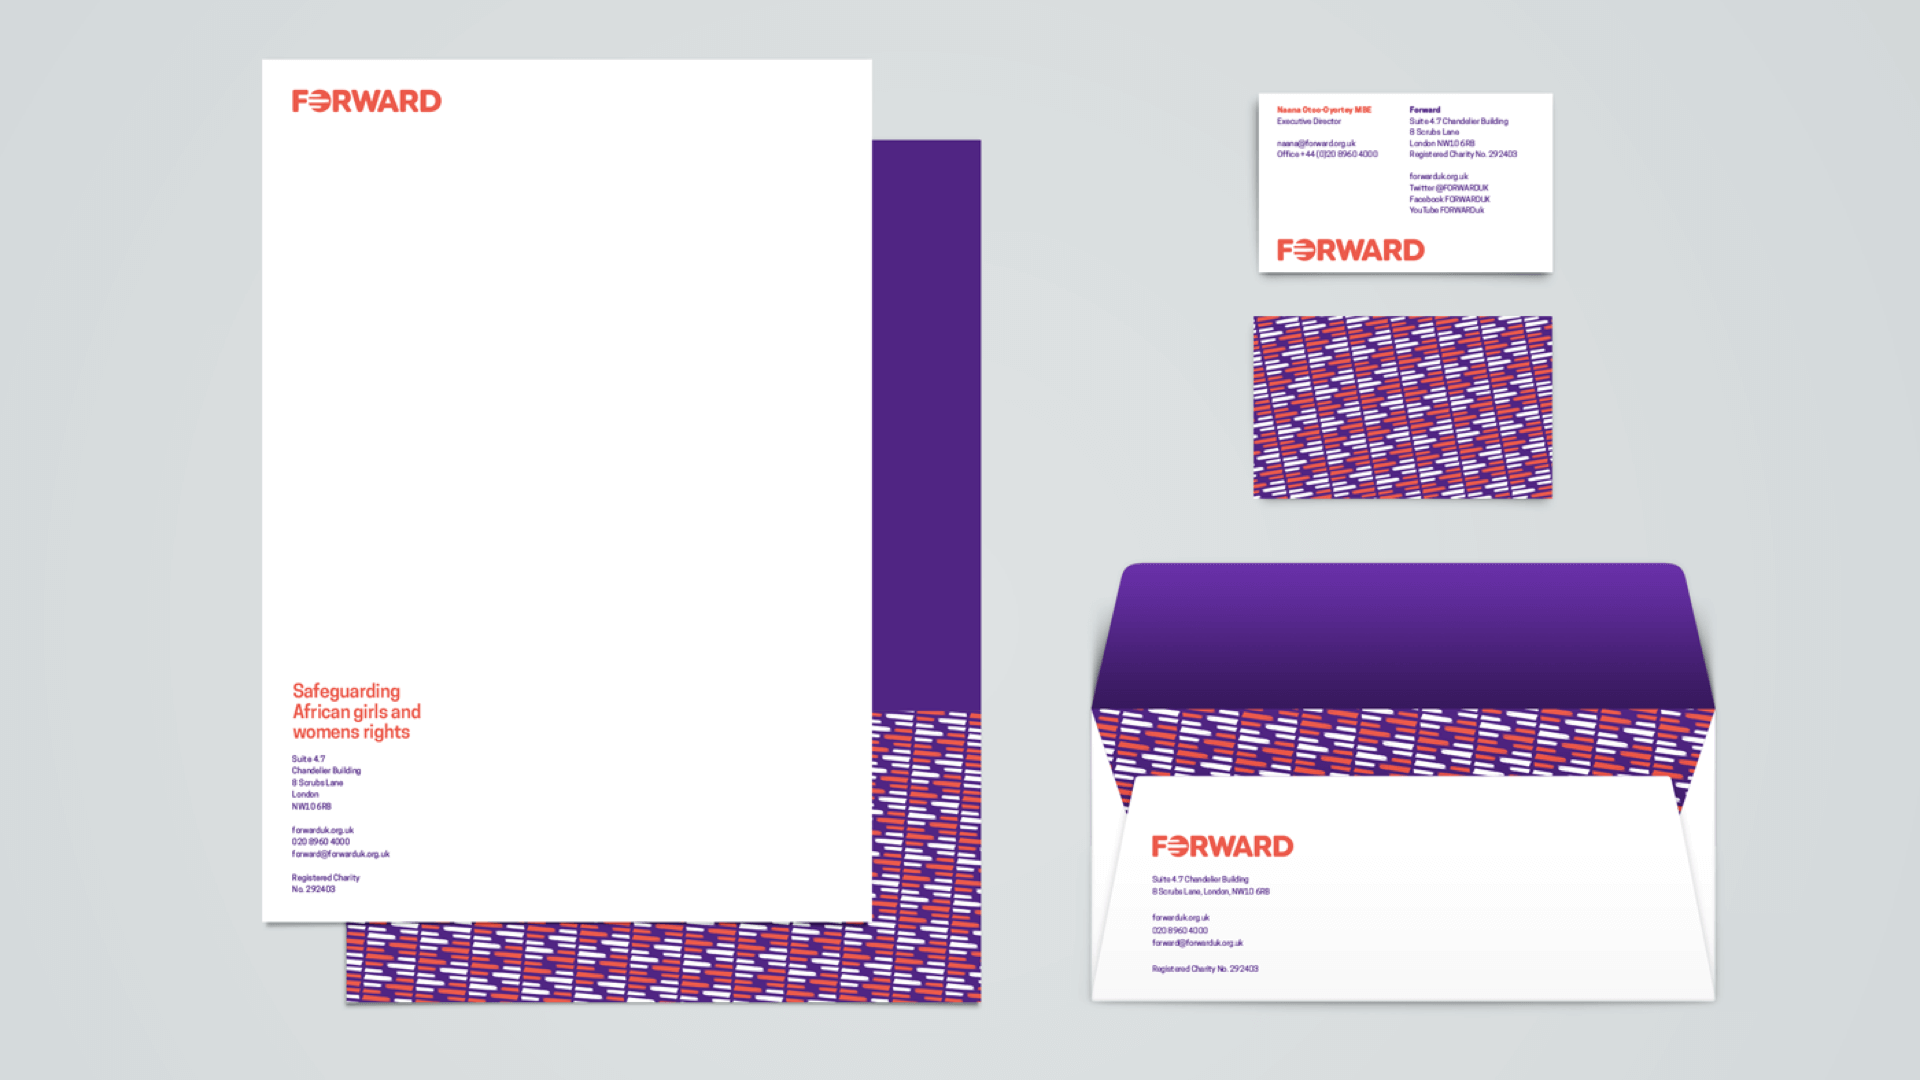 FORWARD stationary samples featuring the redesigned brand